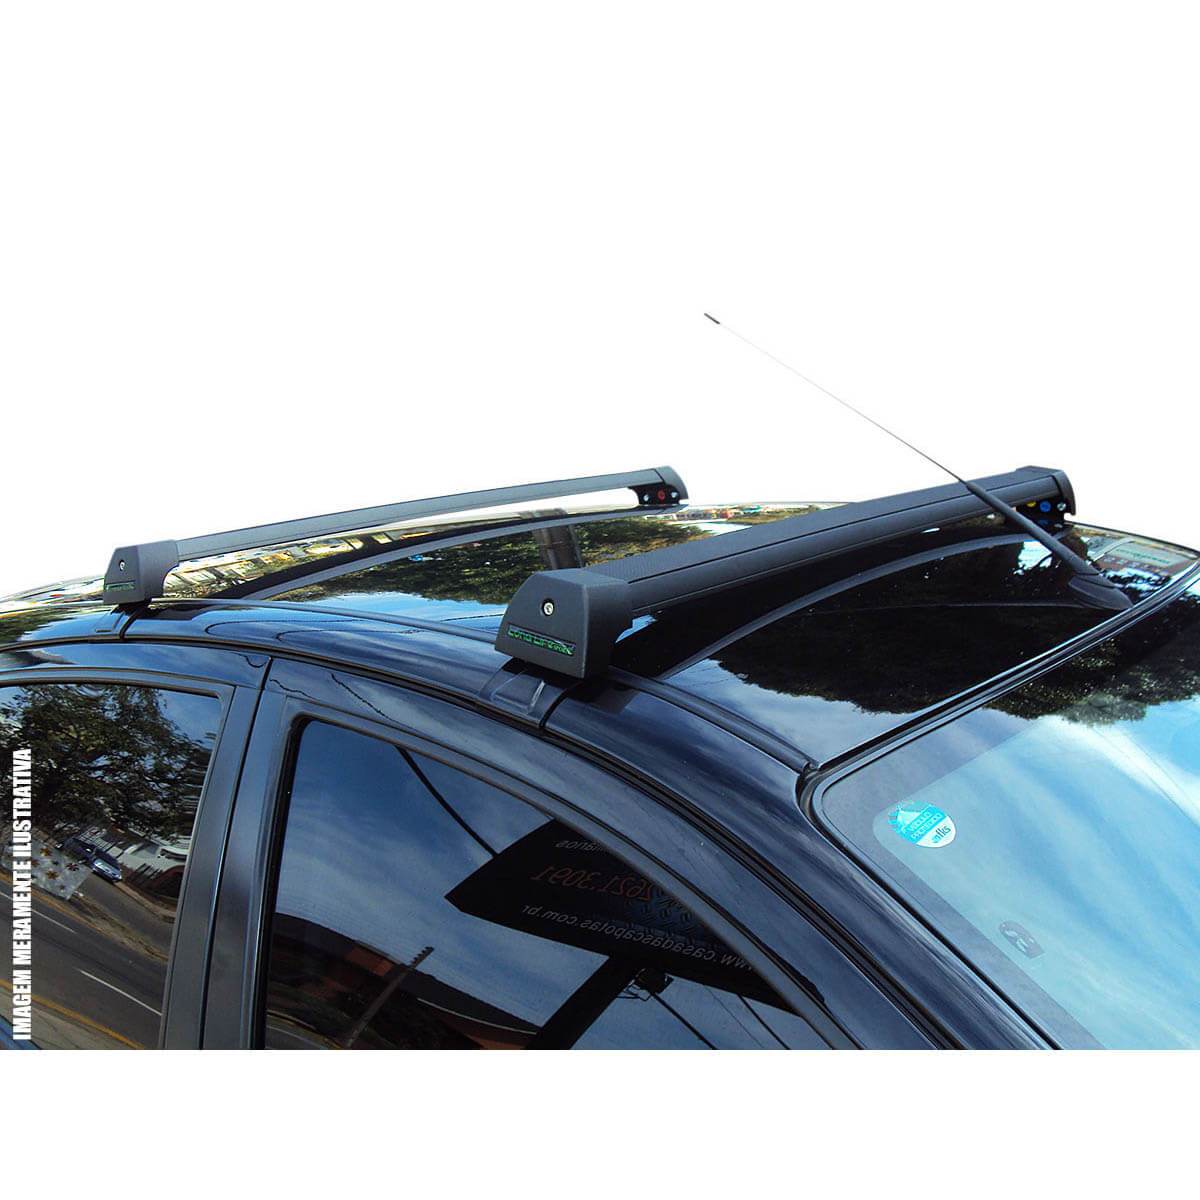 Rack de teto Corolla 2009 a 2014 Long Life Sports preto